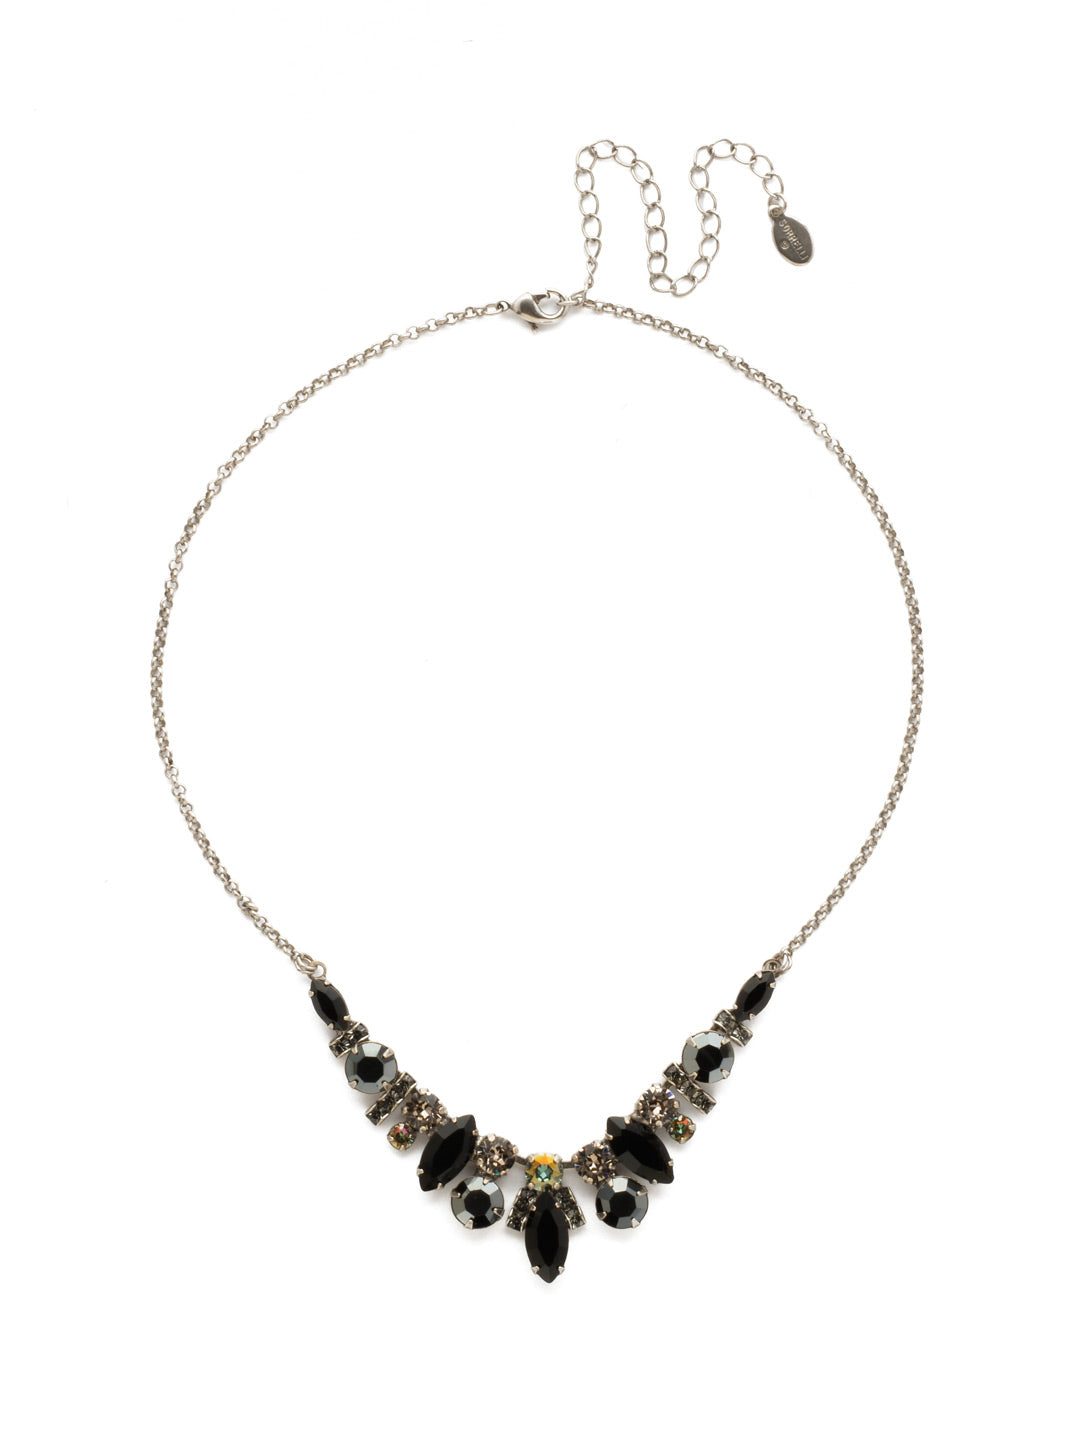 Noveau Navette Statement Necklace - NDG90ASBON